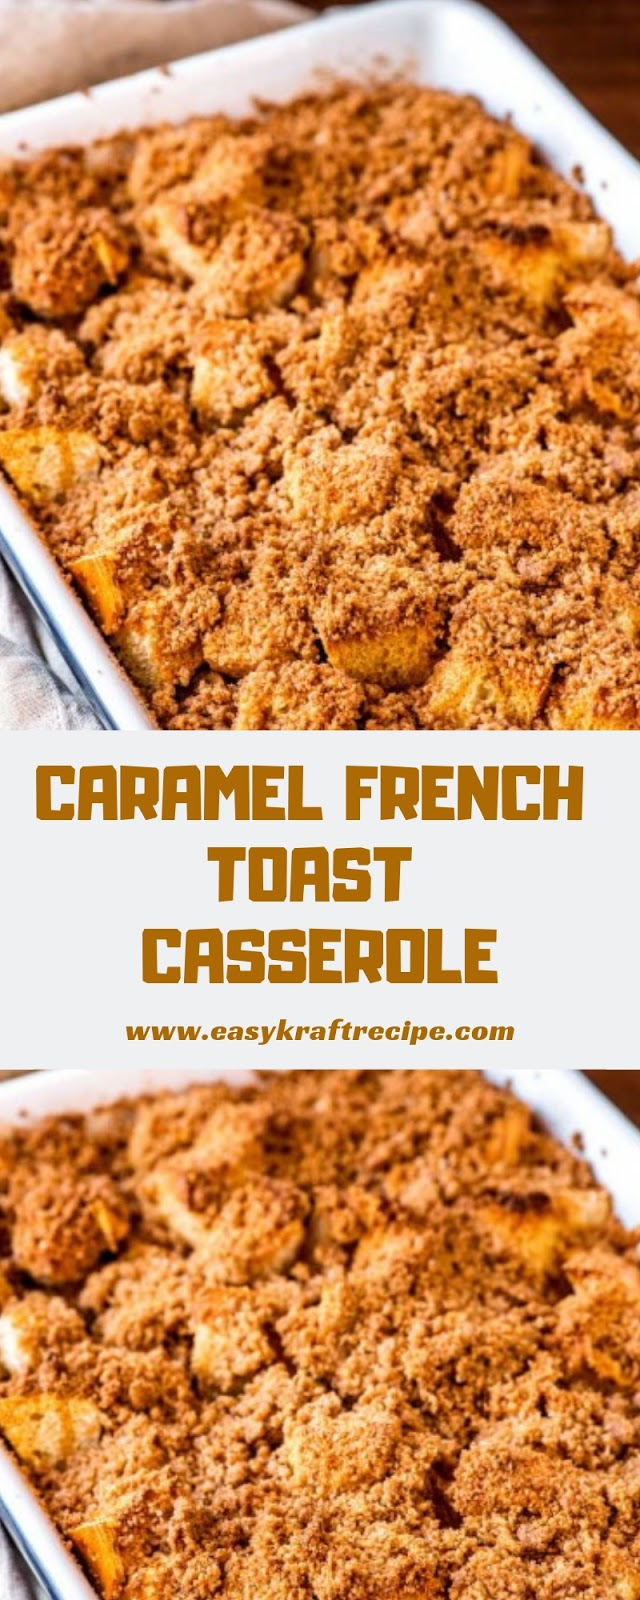 CARAMEL FRENCH TOAST CASSEROLE